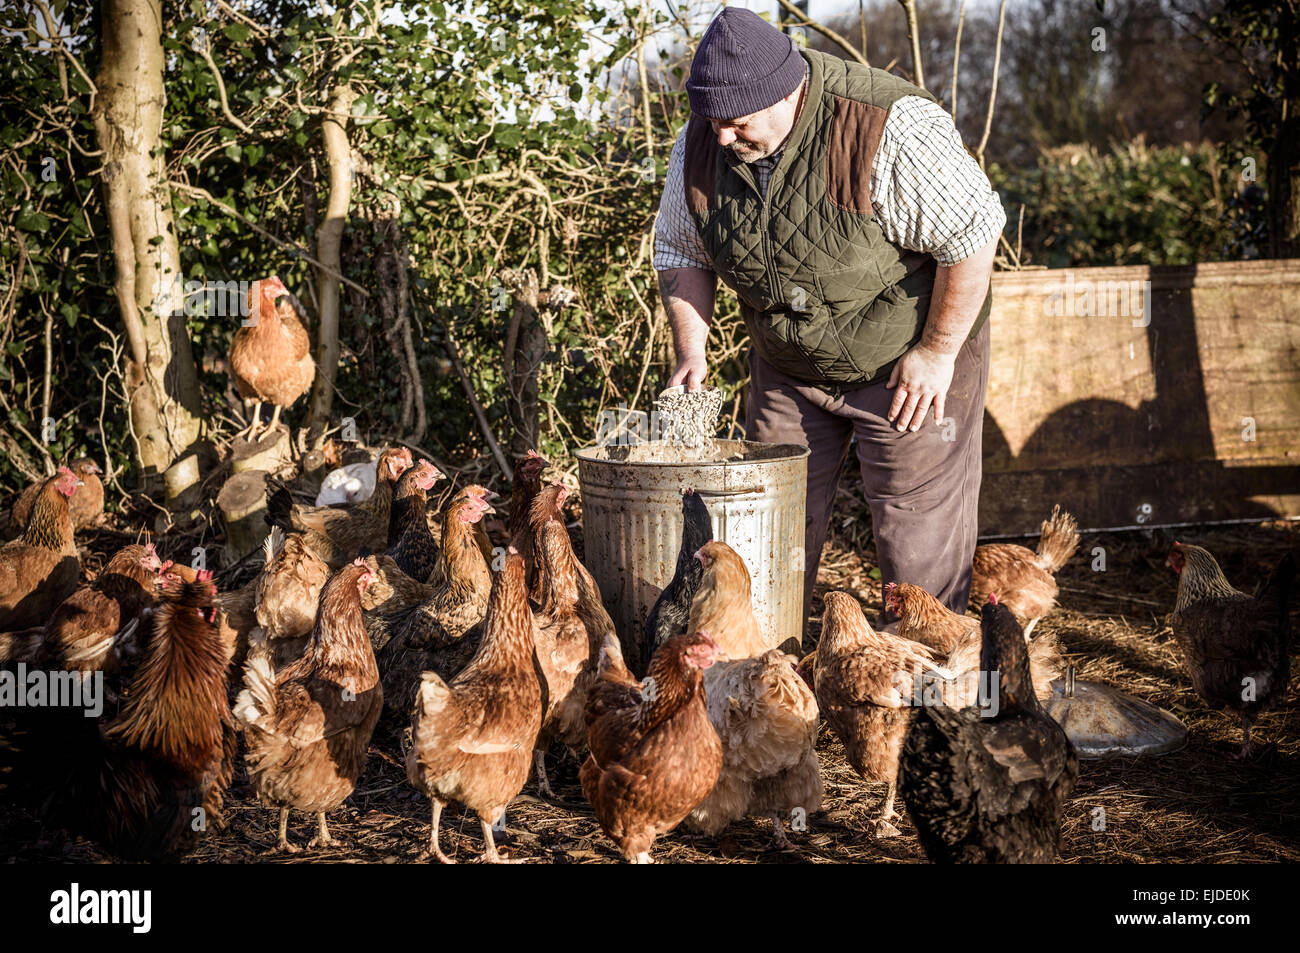 A farmer holding a feed bucket, surrounded by a flock of hungry chickens. Stock Photo